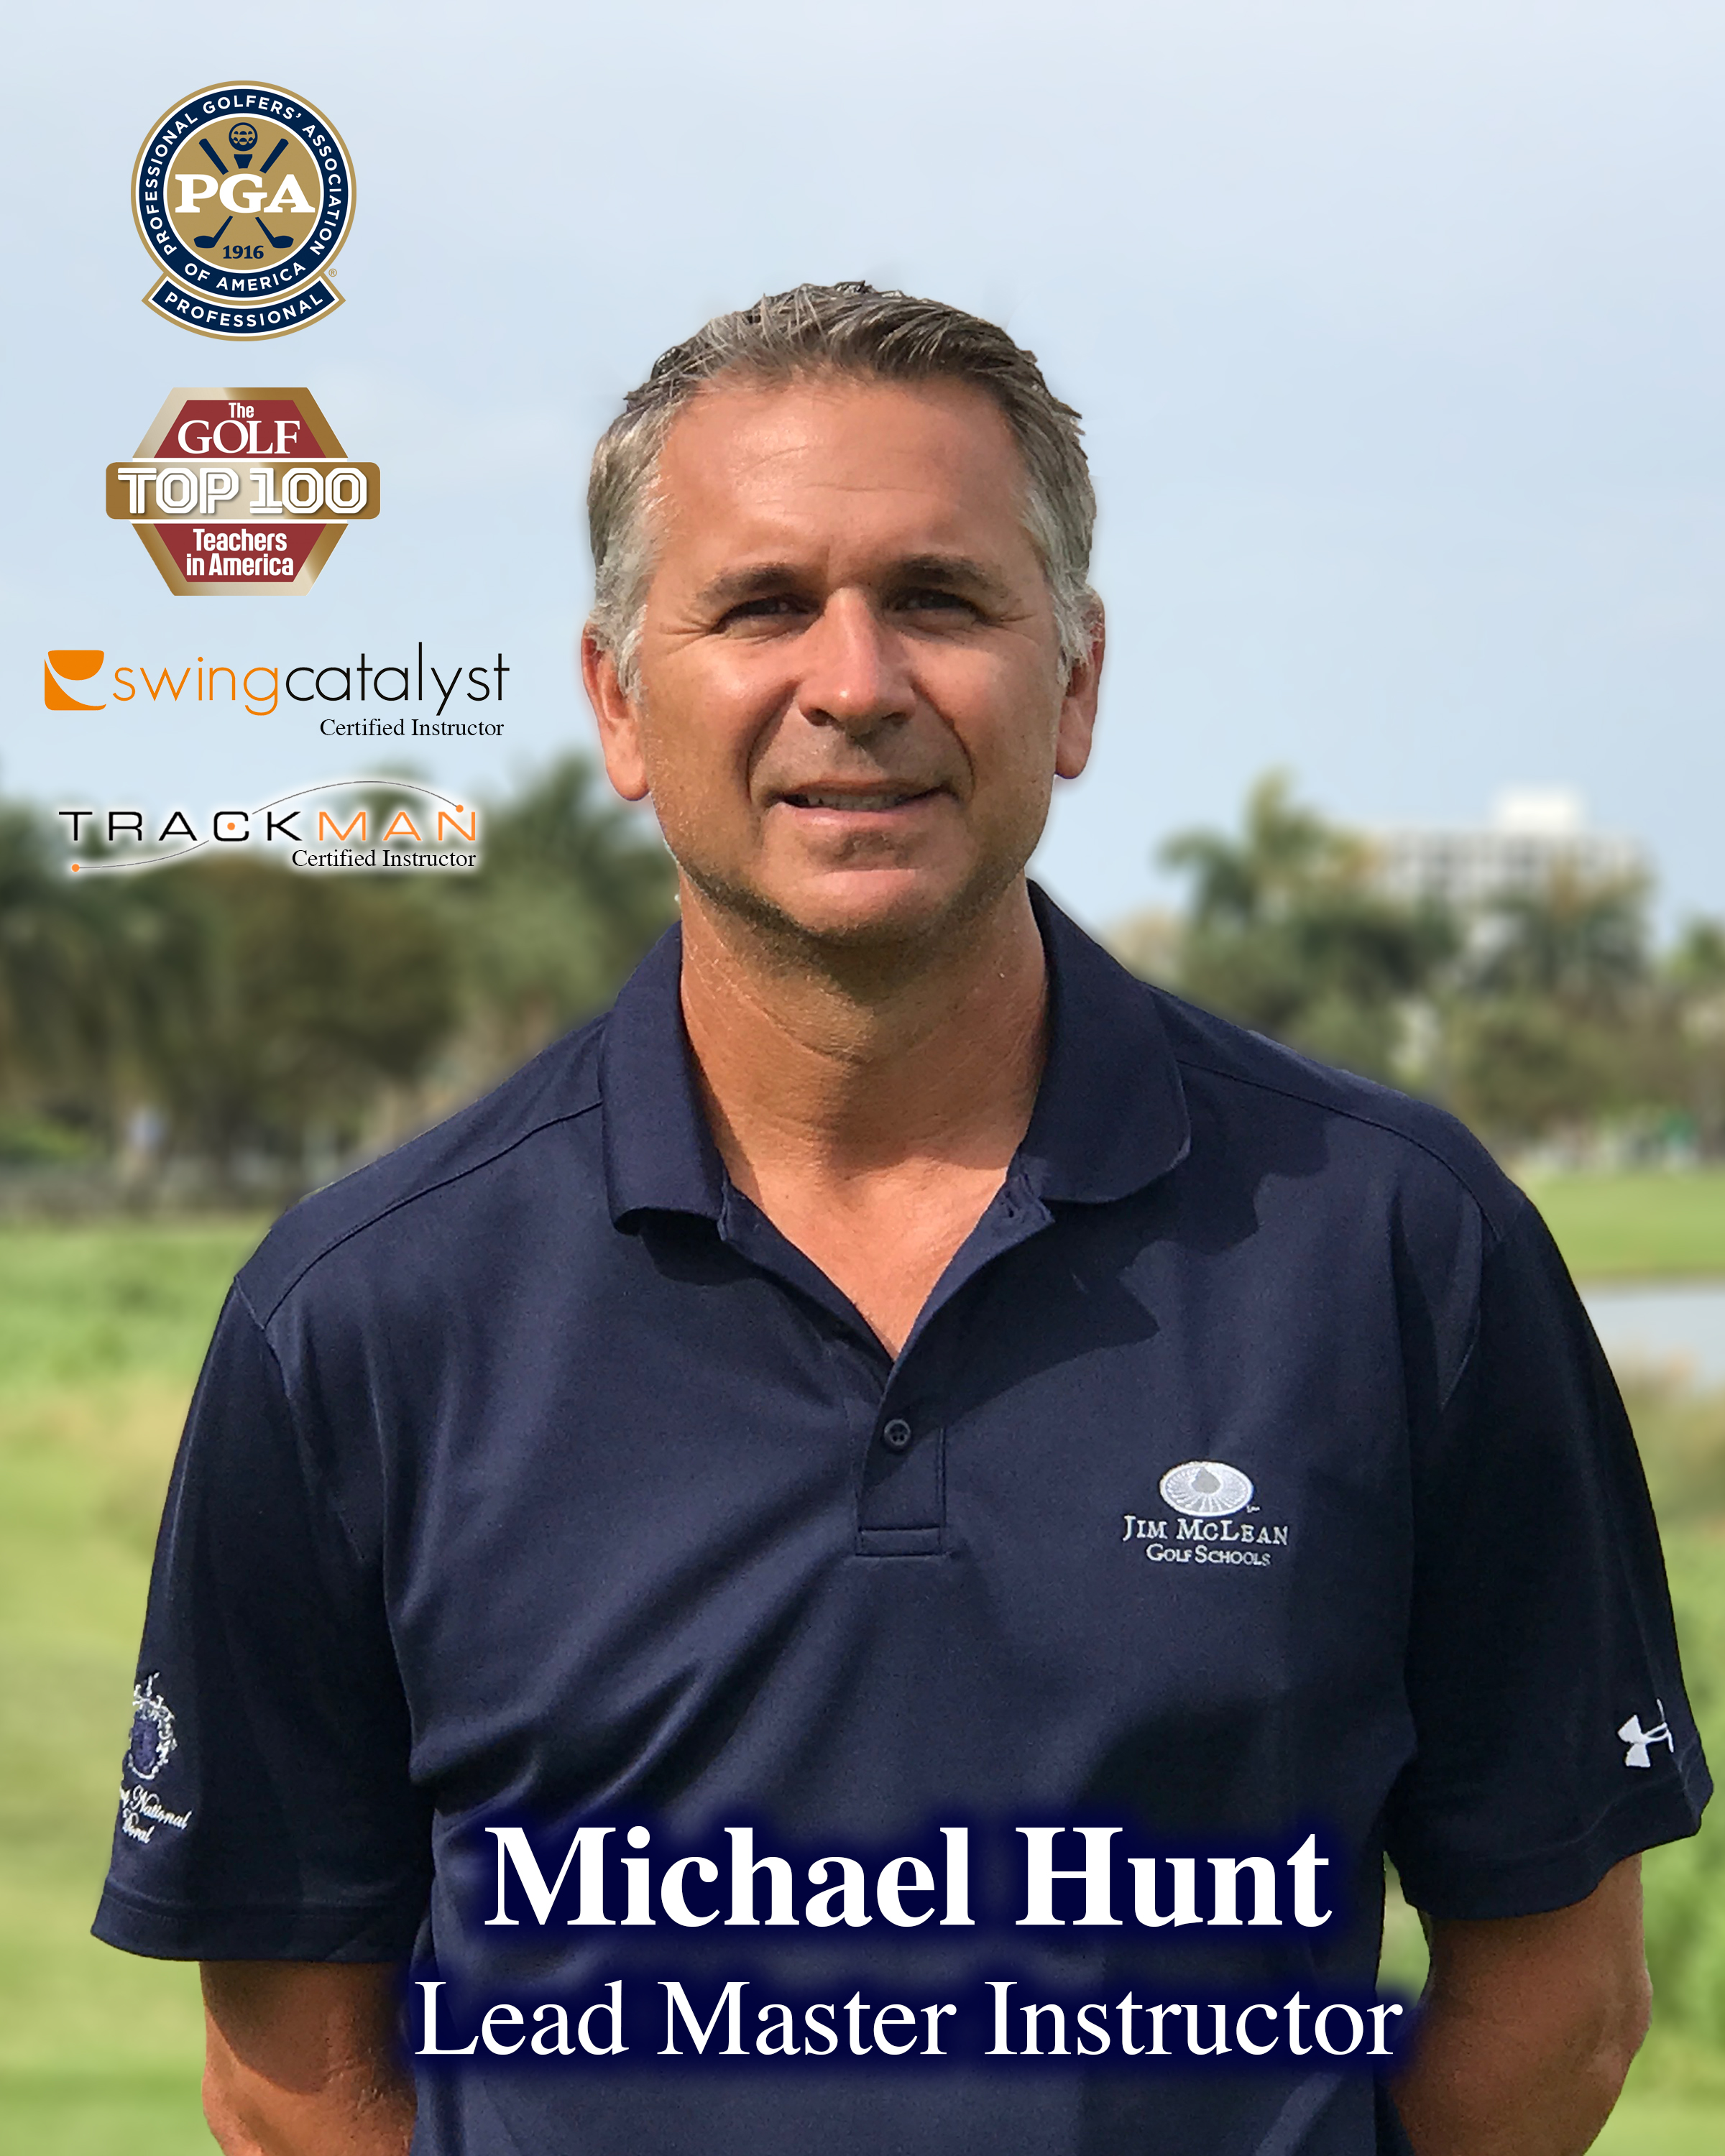 Michael Hunt - Lead Master Instructor